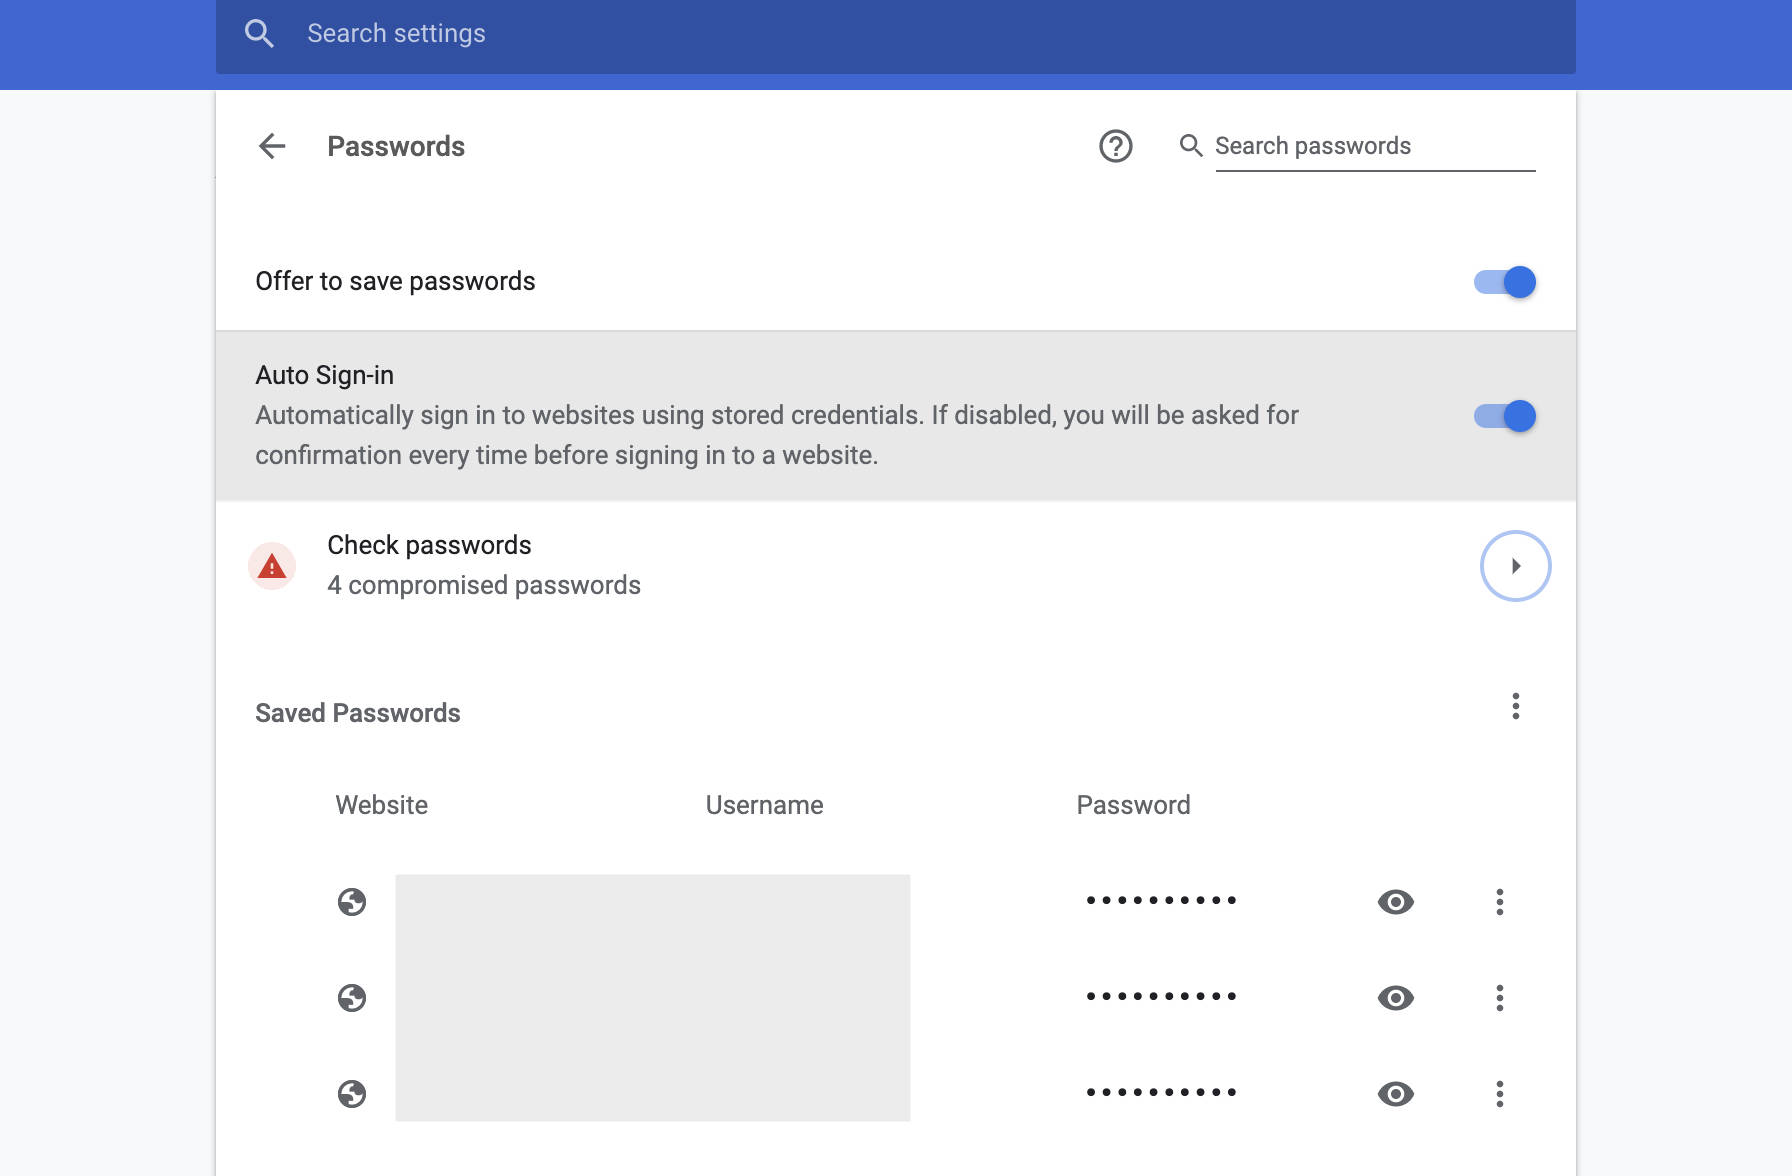 Chrome Compromised Passwords Warning